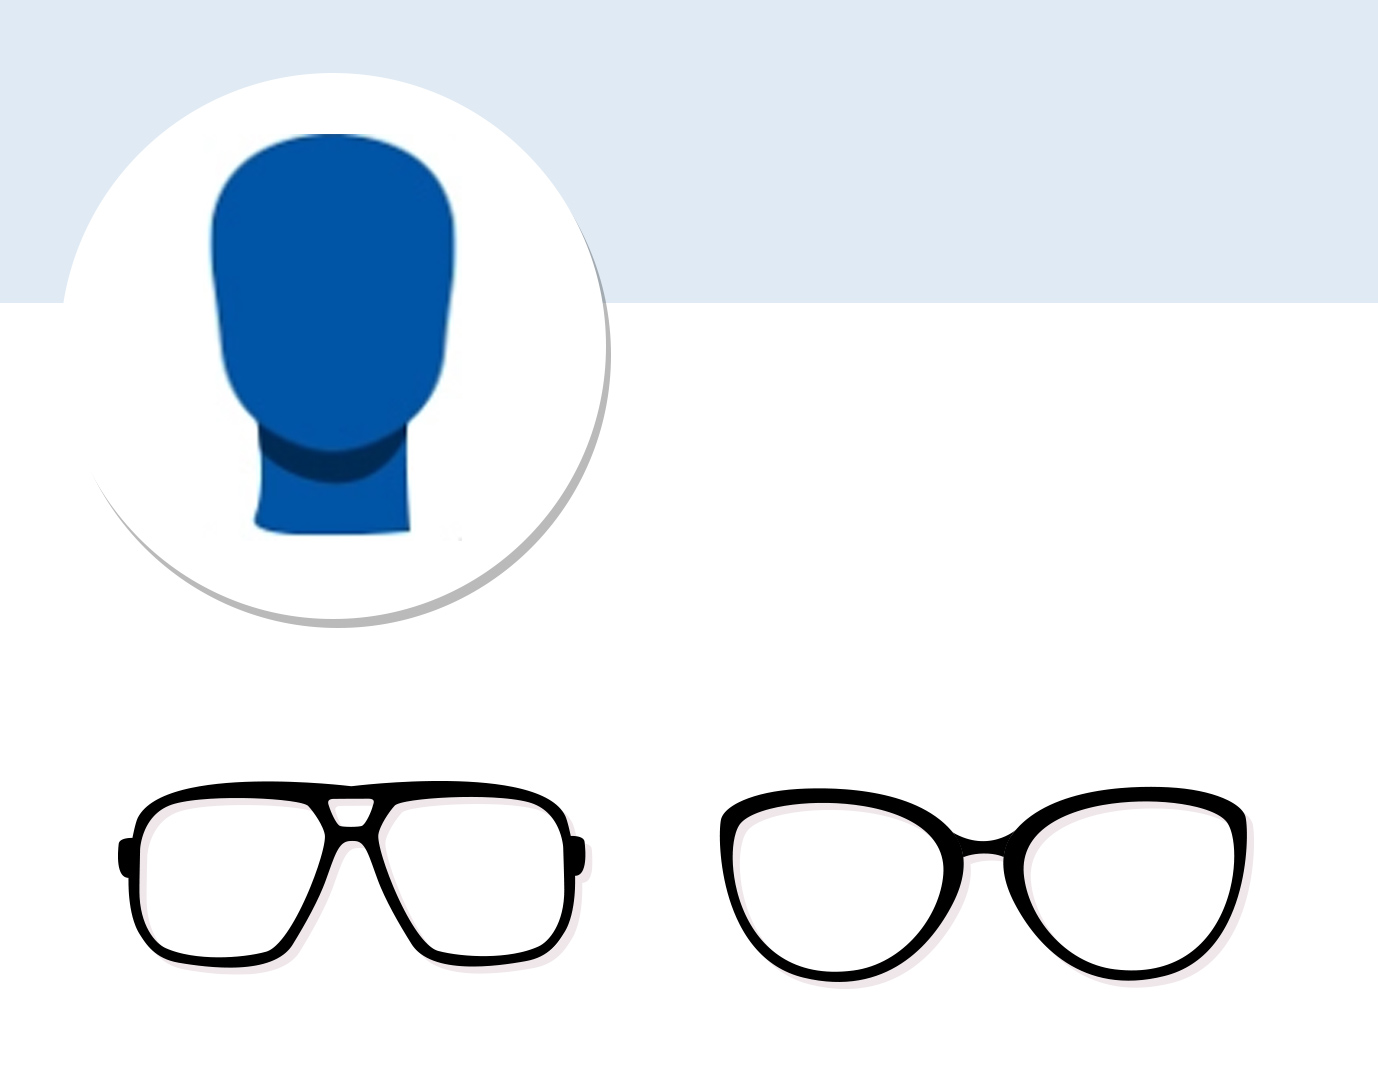 Square face icon with glasses